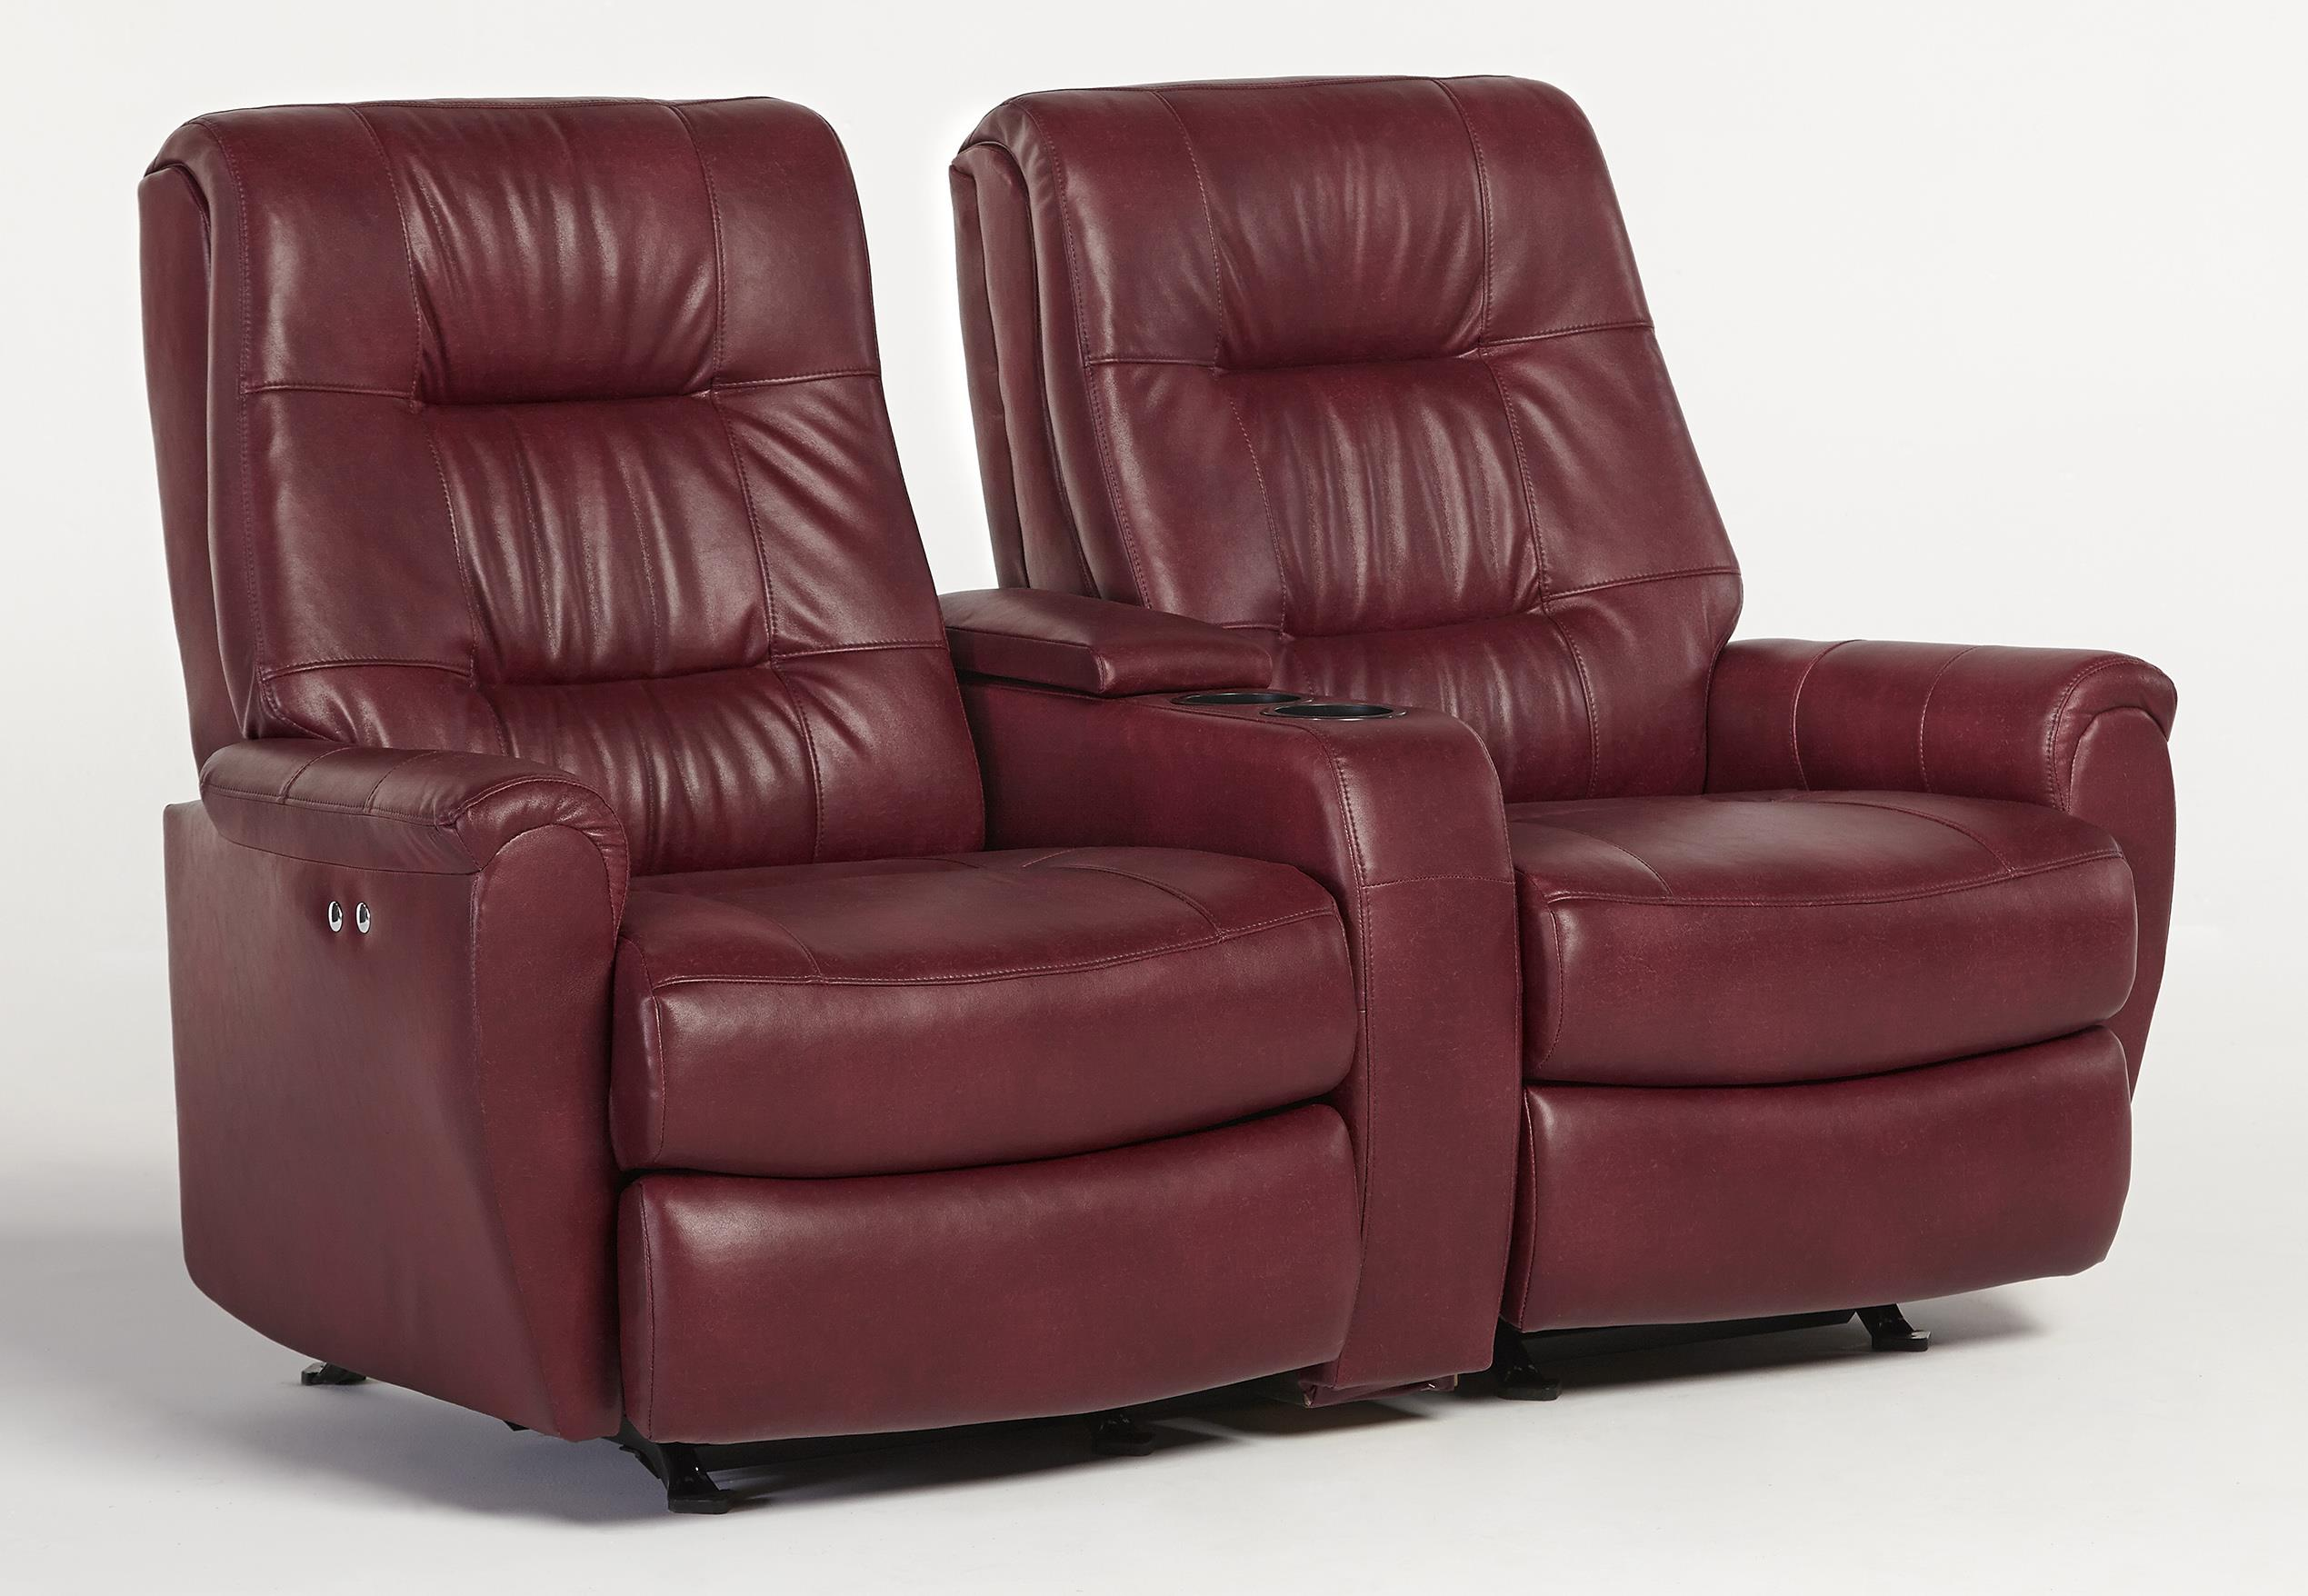 Best Home Furnishings Felicia  Power Rocking Reclining Loveseat w/ Cnsl - Item Number: L270UQ7-26738U